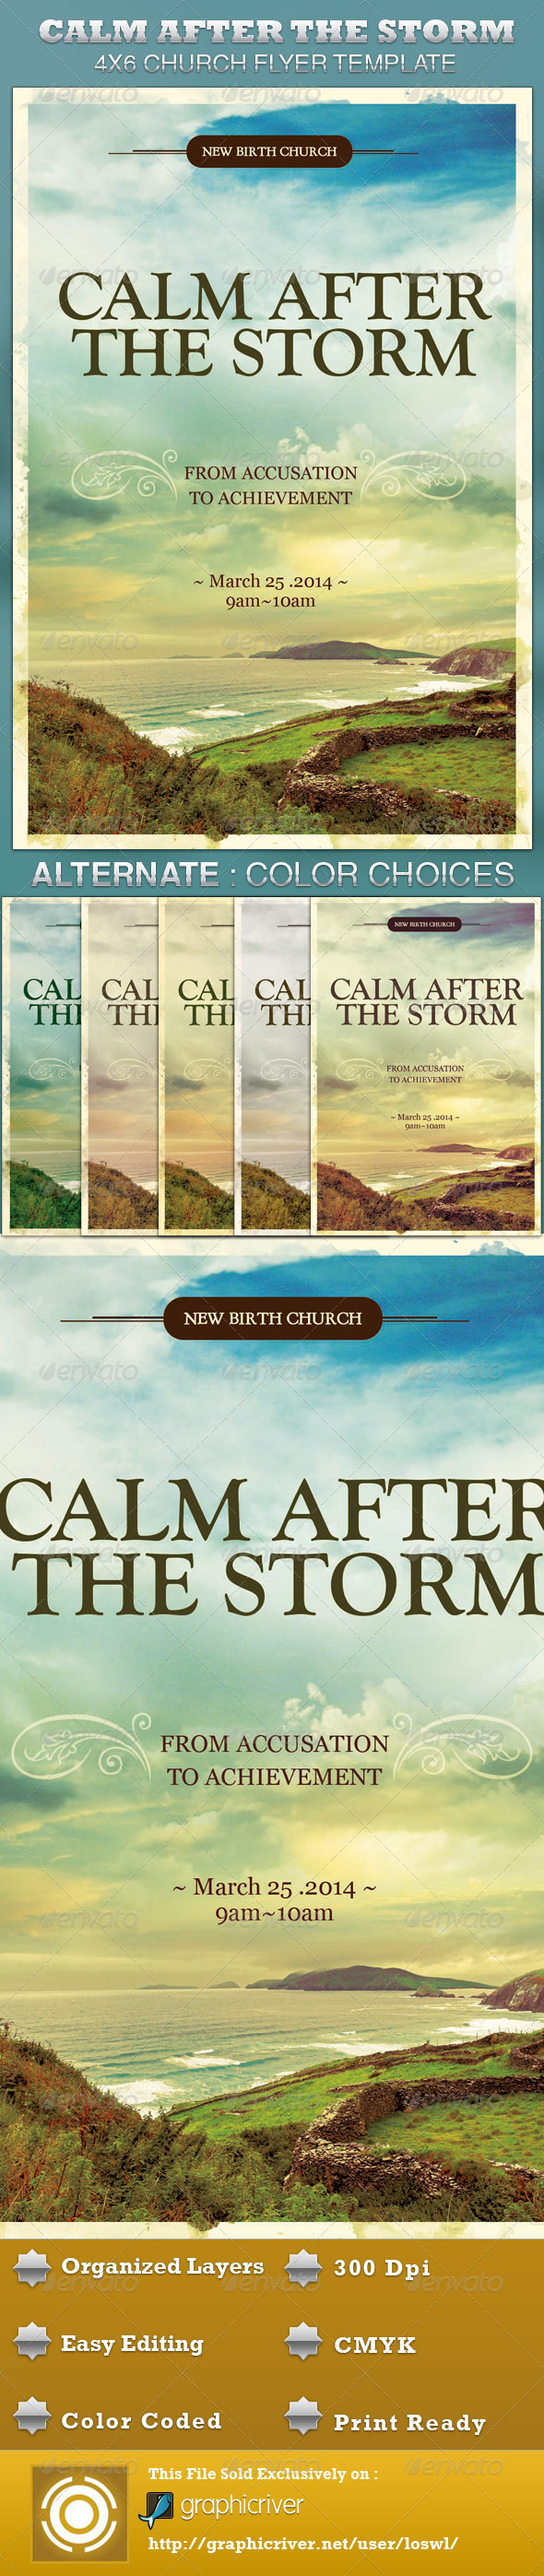 GraphicRiver Calm After the Storm Church Flyer Template 4236538